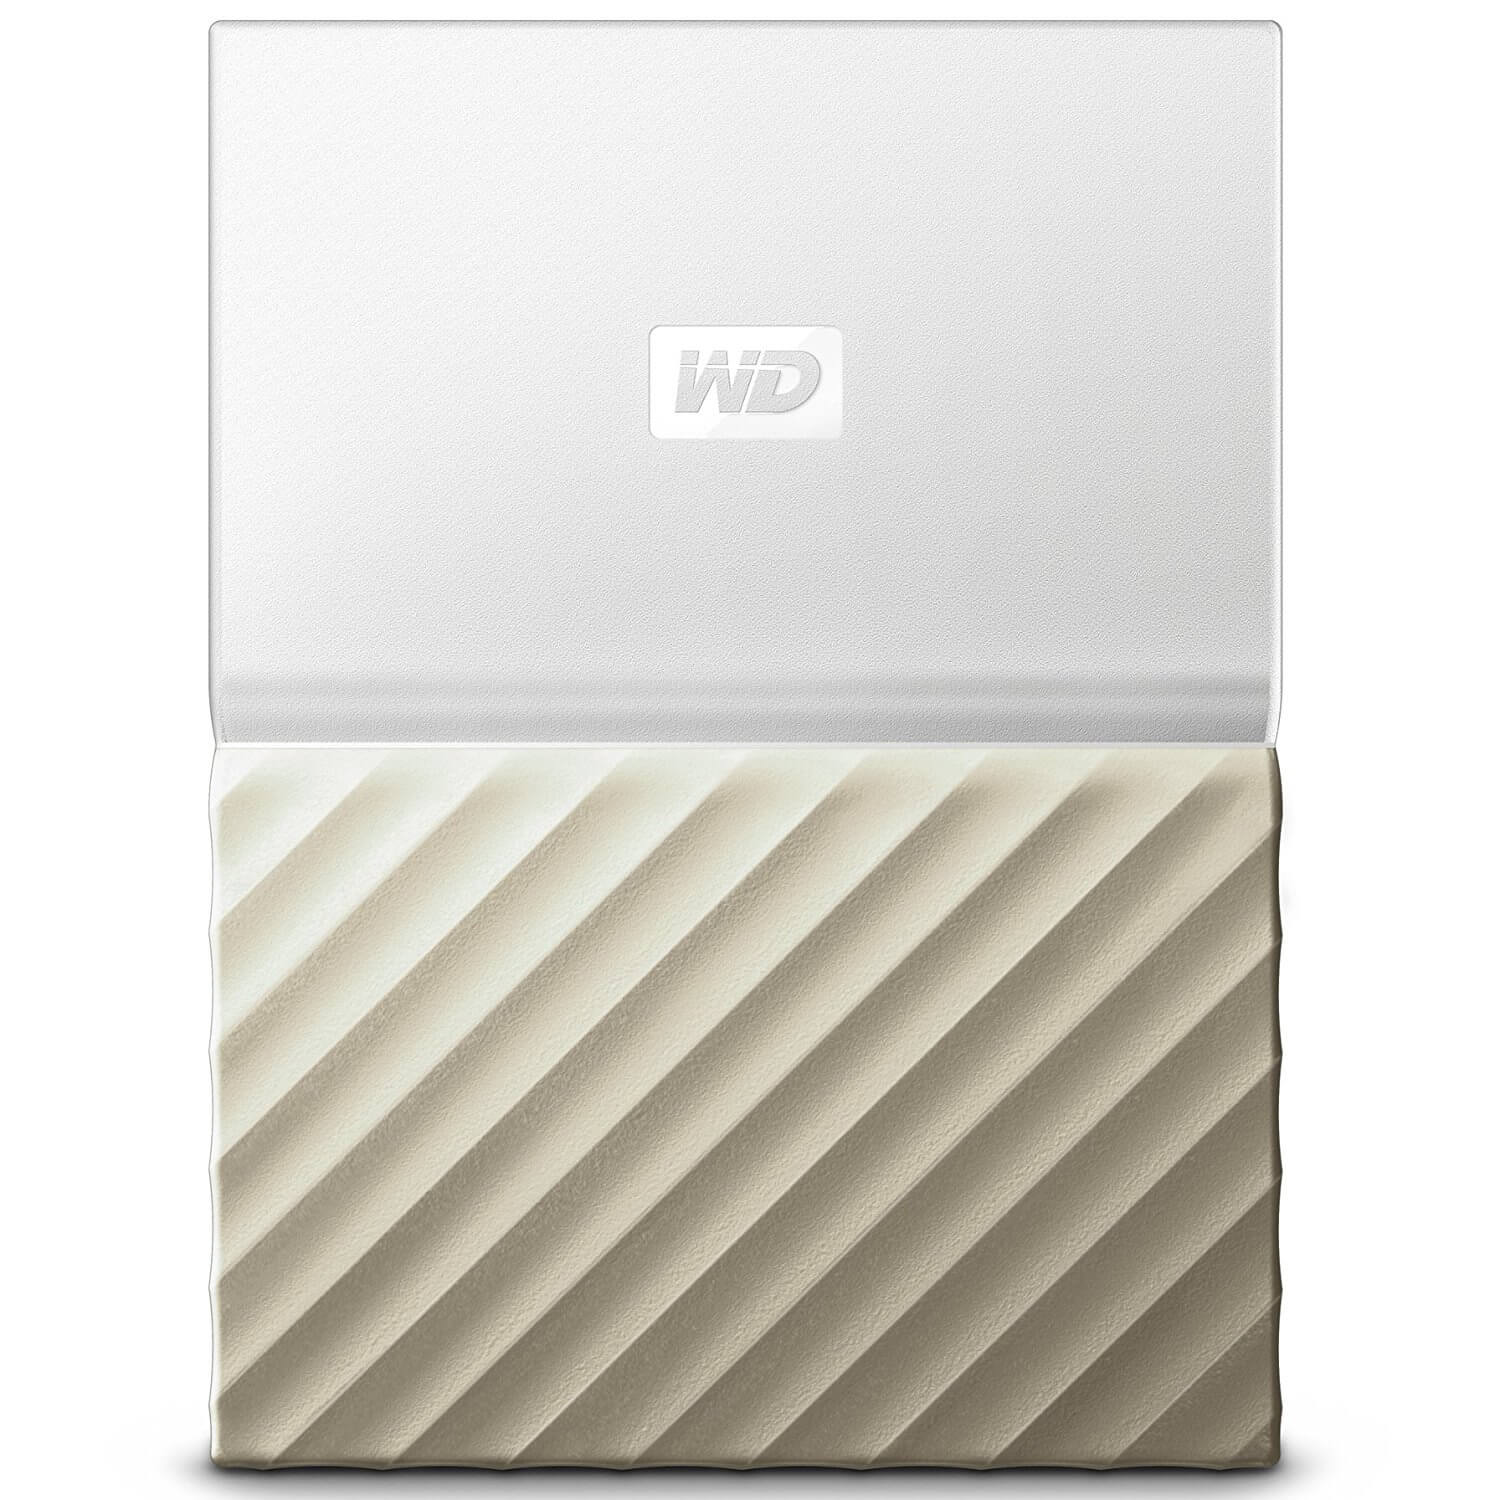 Western Digital MyPassport Ultra HDD 1TB USB 3.0 - gold